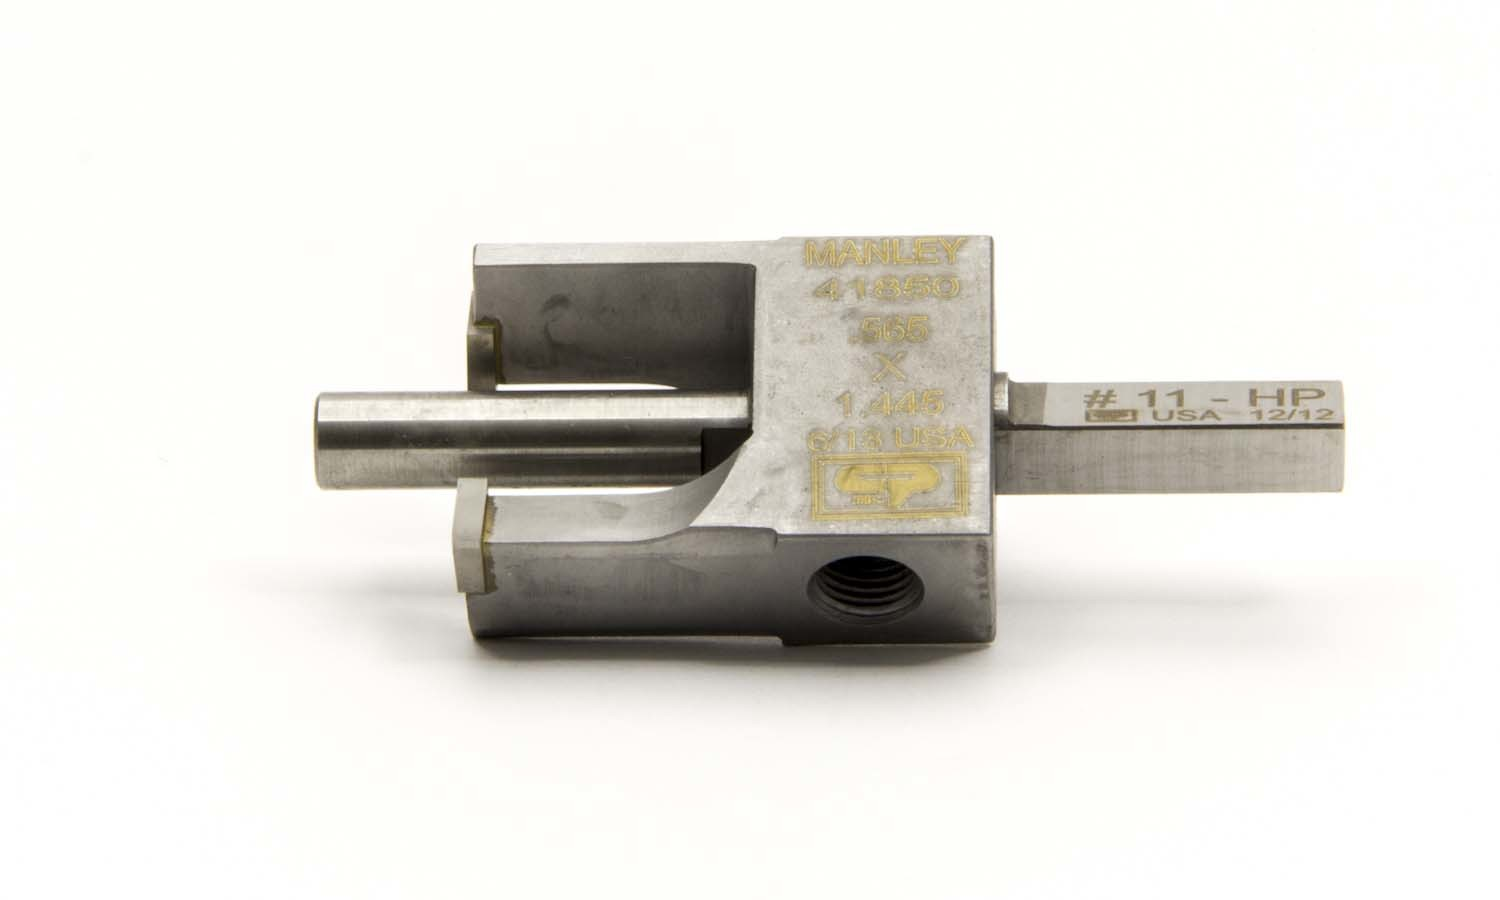 Manley 1.46in Sprng Seat Cutter